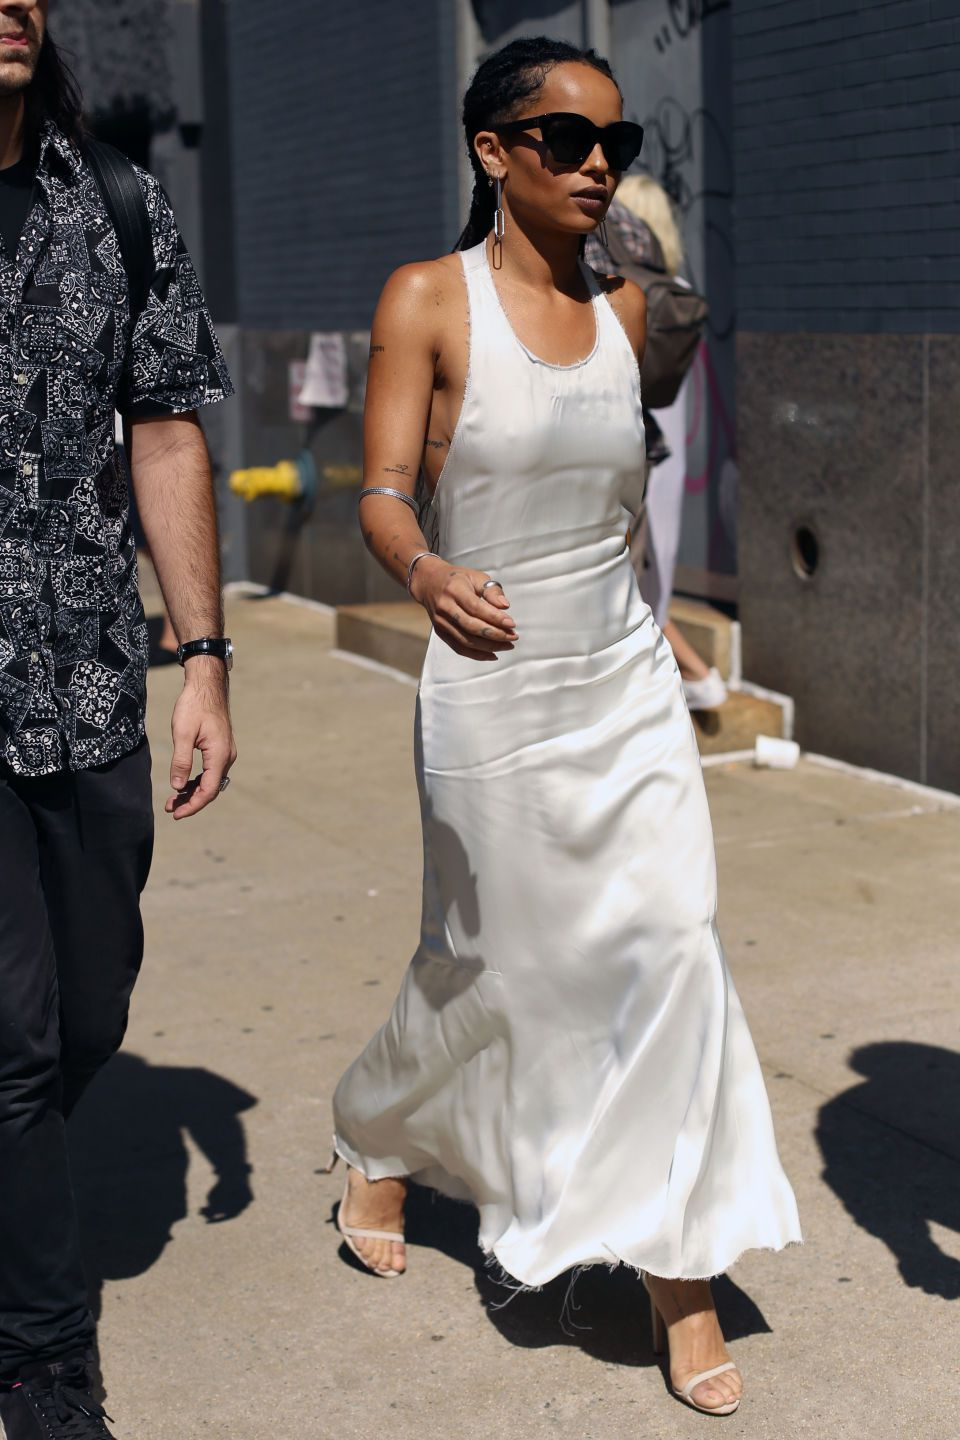 Vintage items that are back in style and worth the splurge. Seen here: Zoe Kravitz in white slip dress on the streets of nyc. #zoekravitzstyle